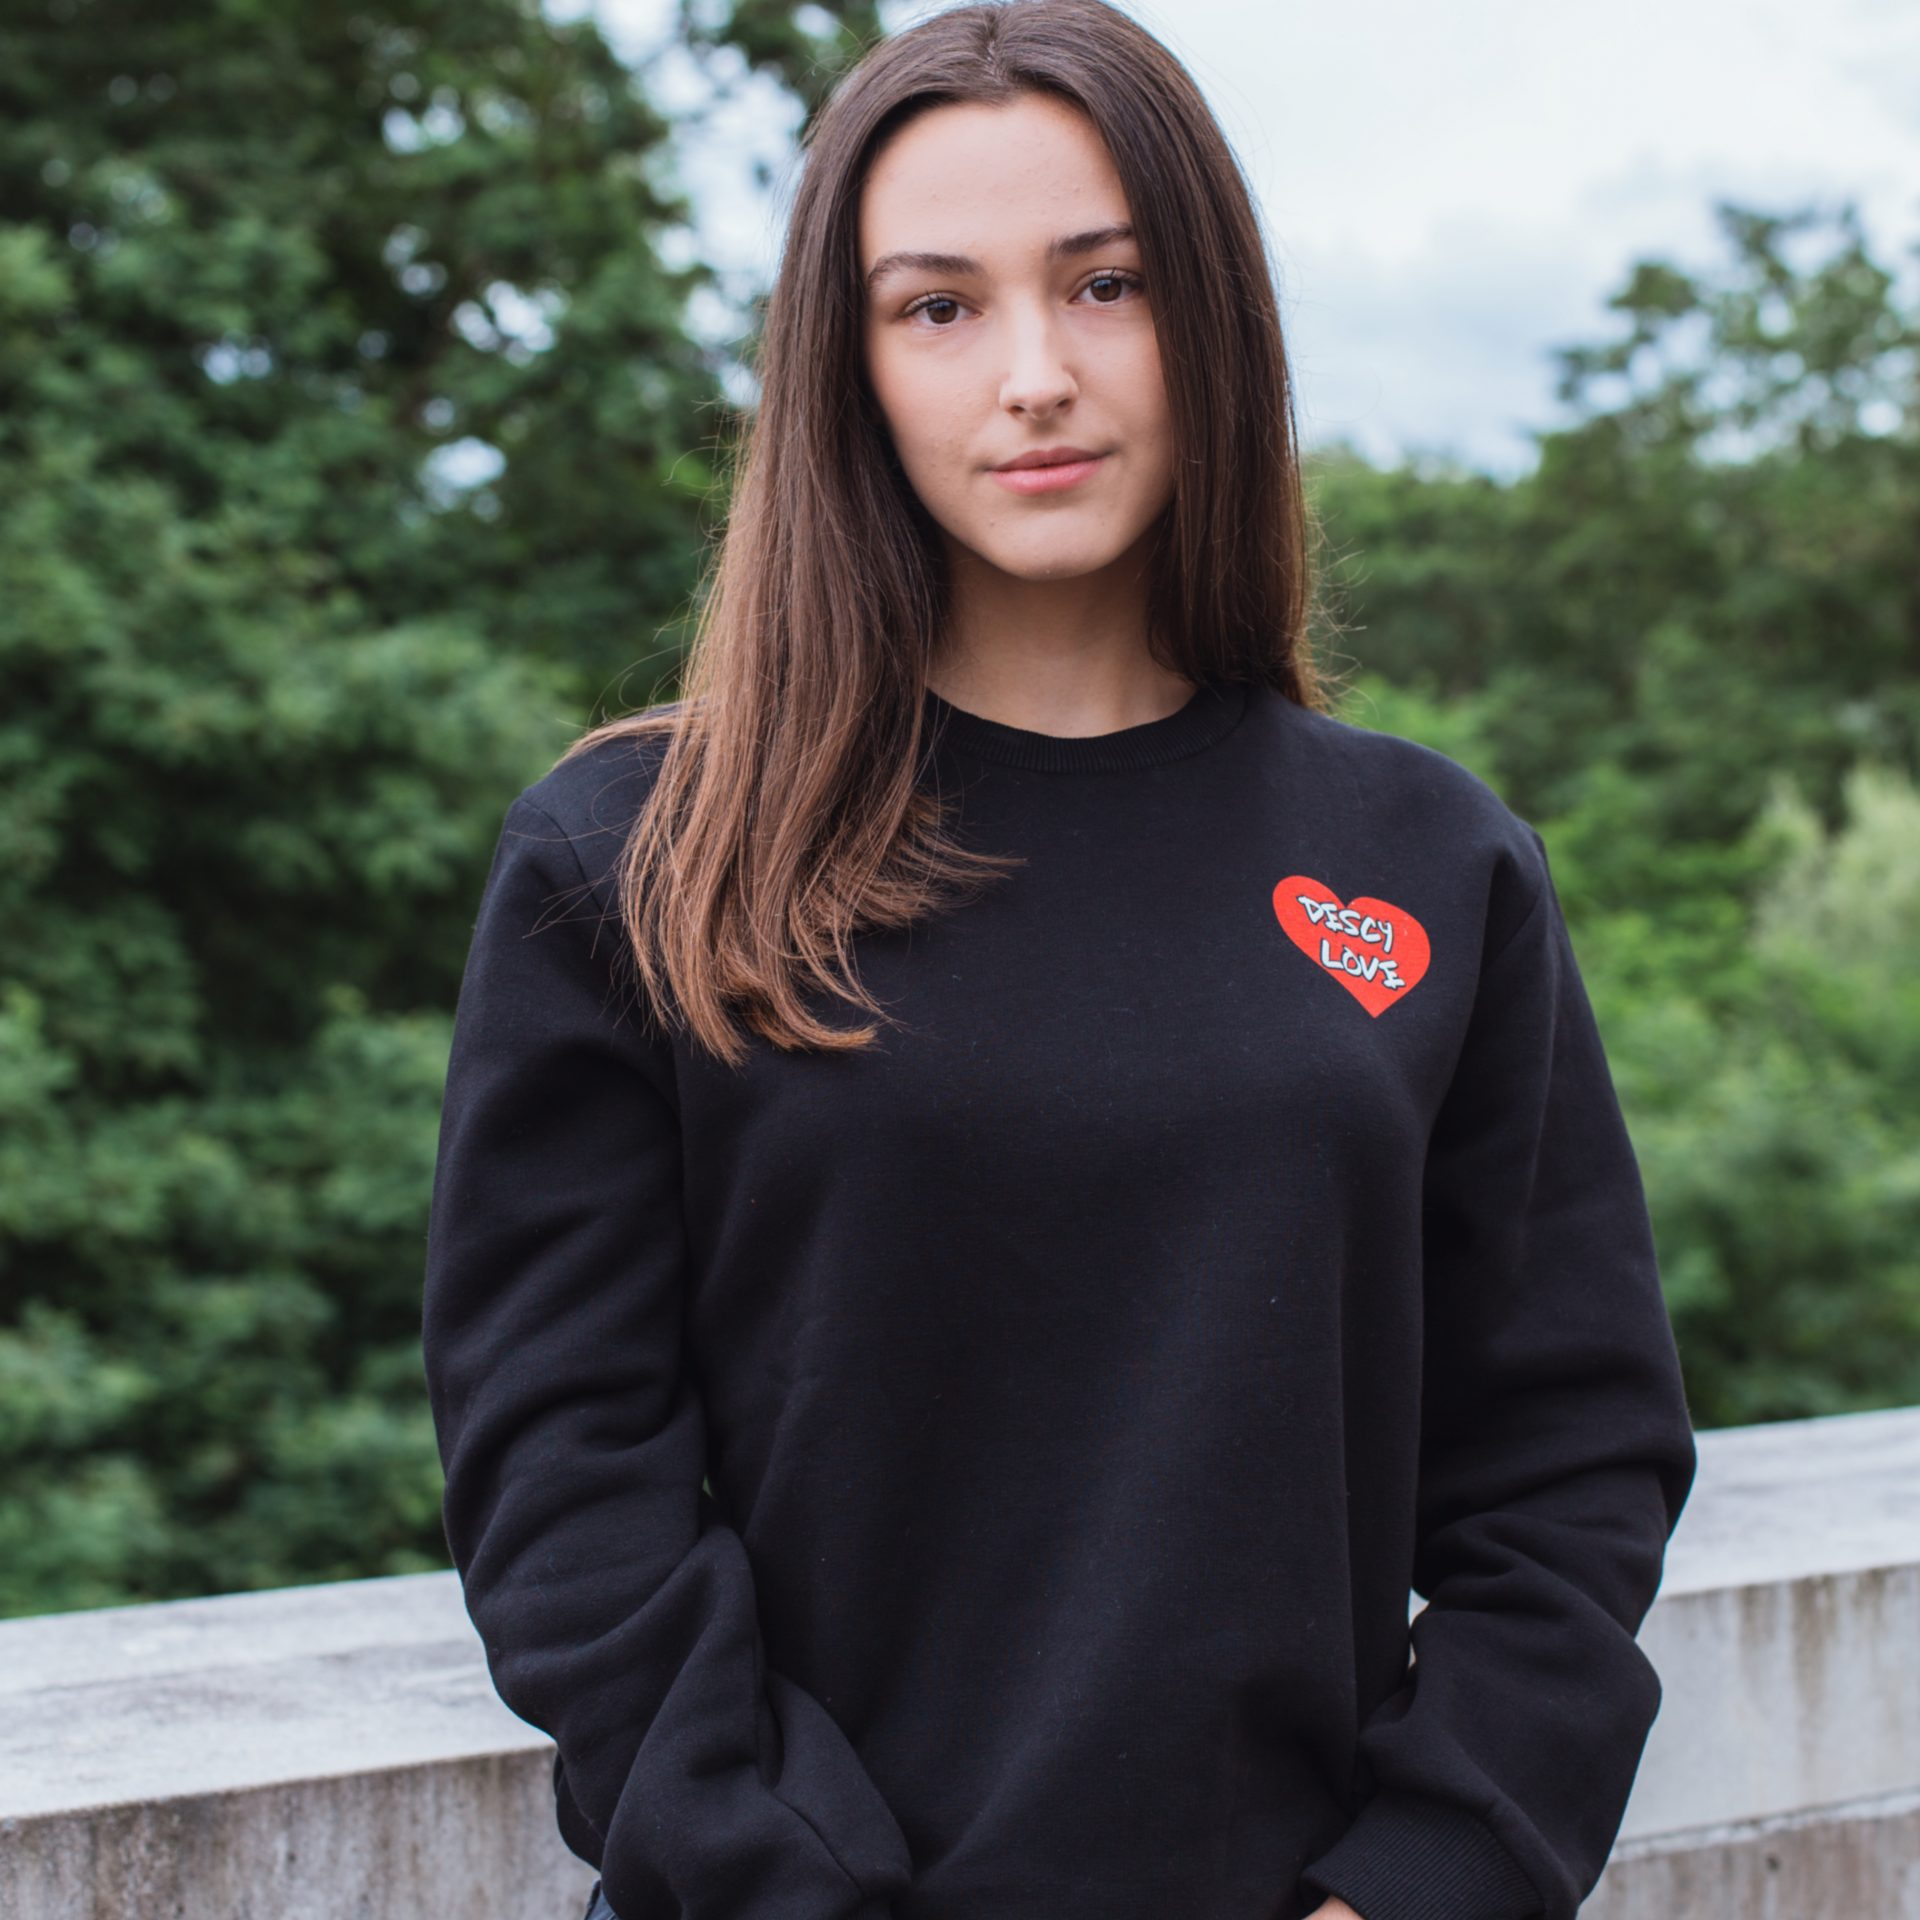 DESCY Love Sweater Black Unisex